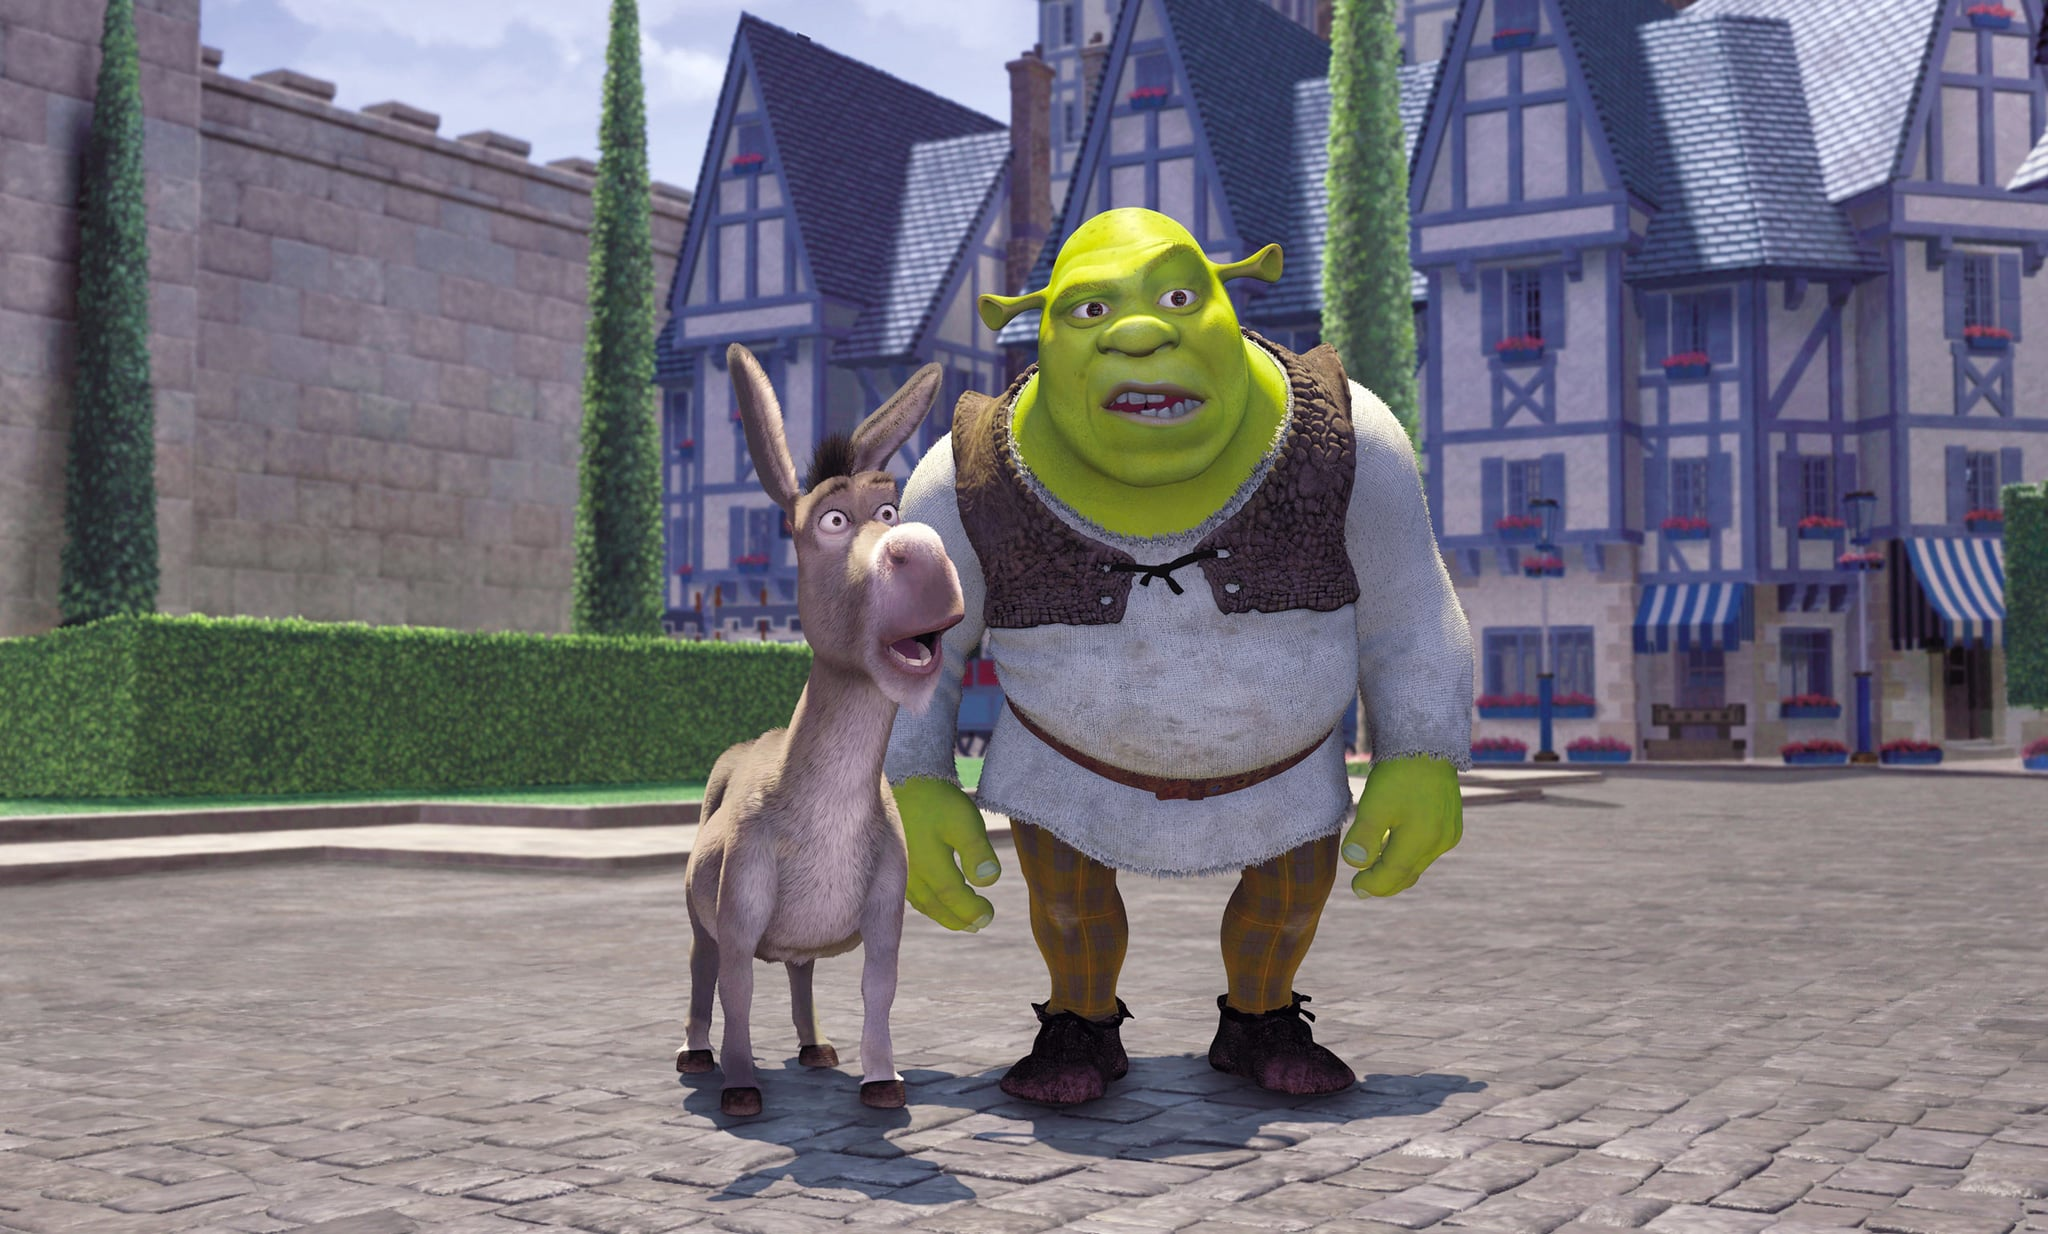 SHREK, Eddie Murphy as Donkey, Mike Myers as Shrek, 2001. DreamWorks/courtesy Everett